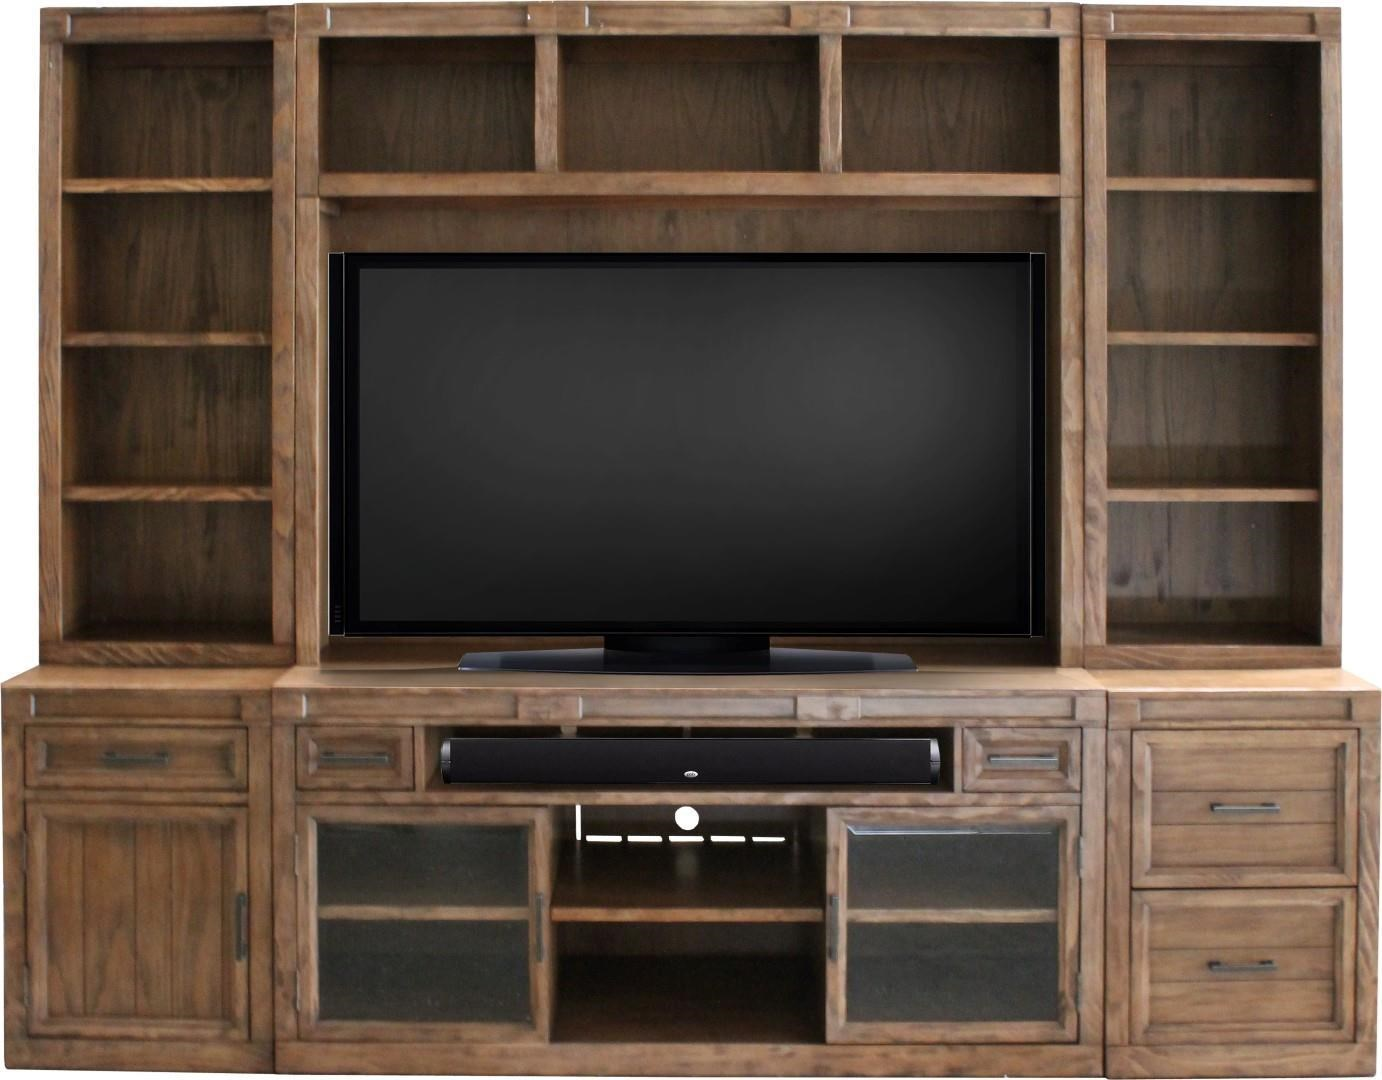 Morris Home Furnishings Hickory Hills Hickory Hills 6 Piece Wall Unit - Item Number: 258843892